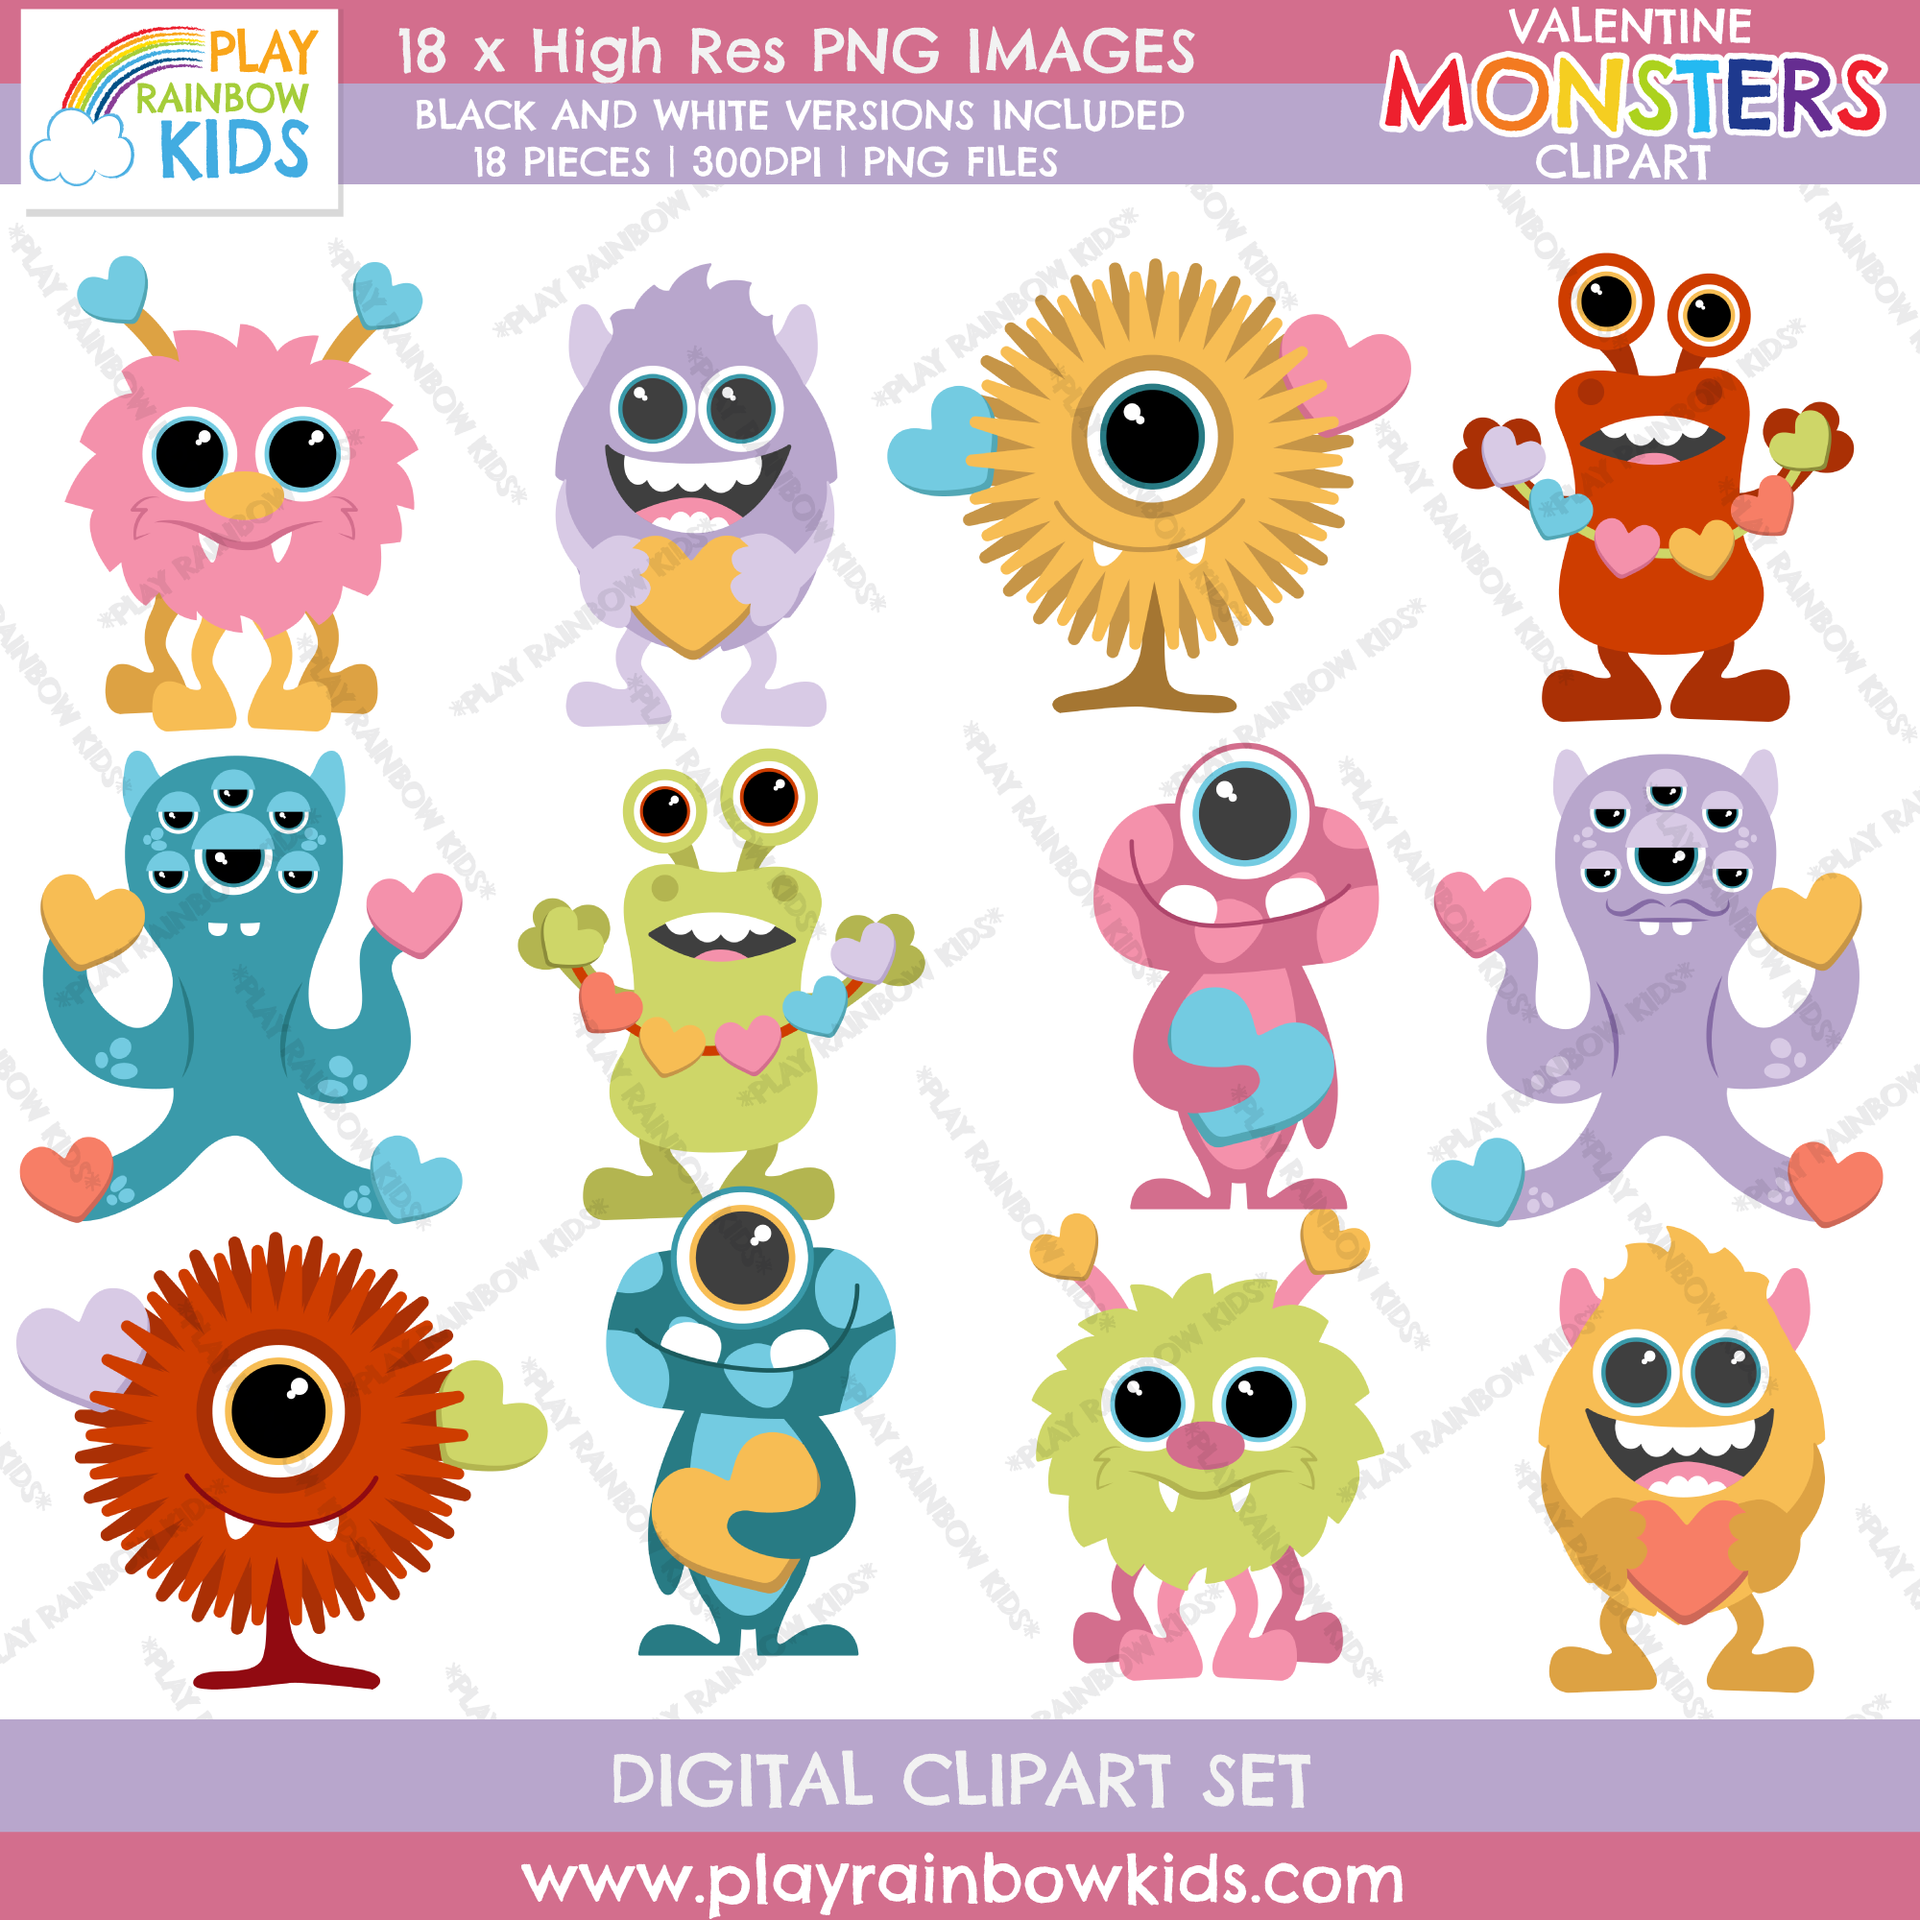 Play Rainbow Kids Valentine's Day Cute Monster Clipart